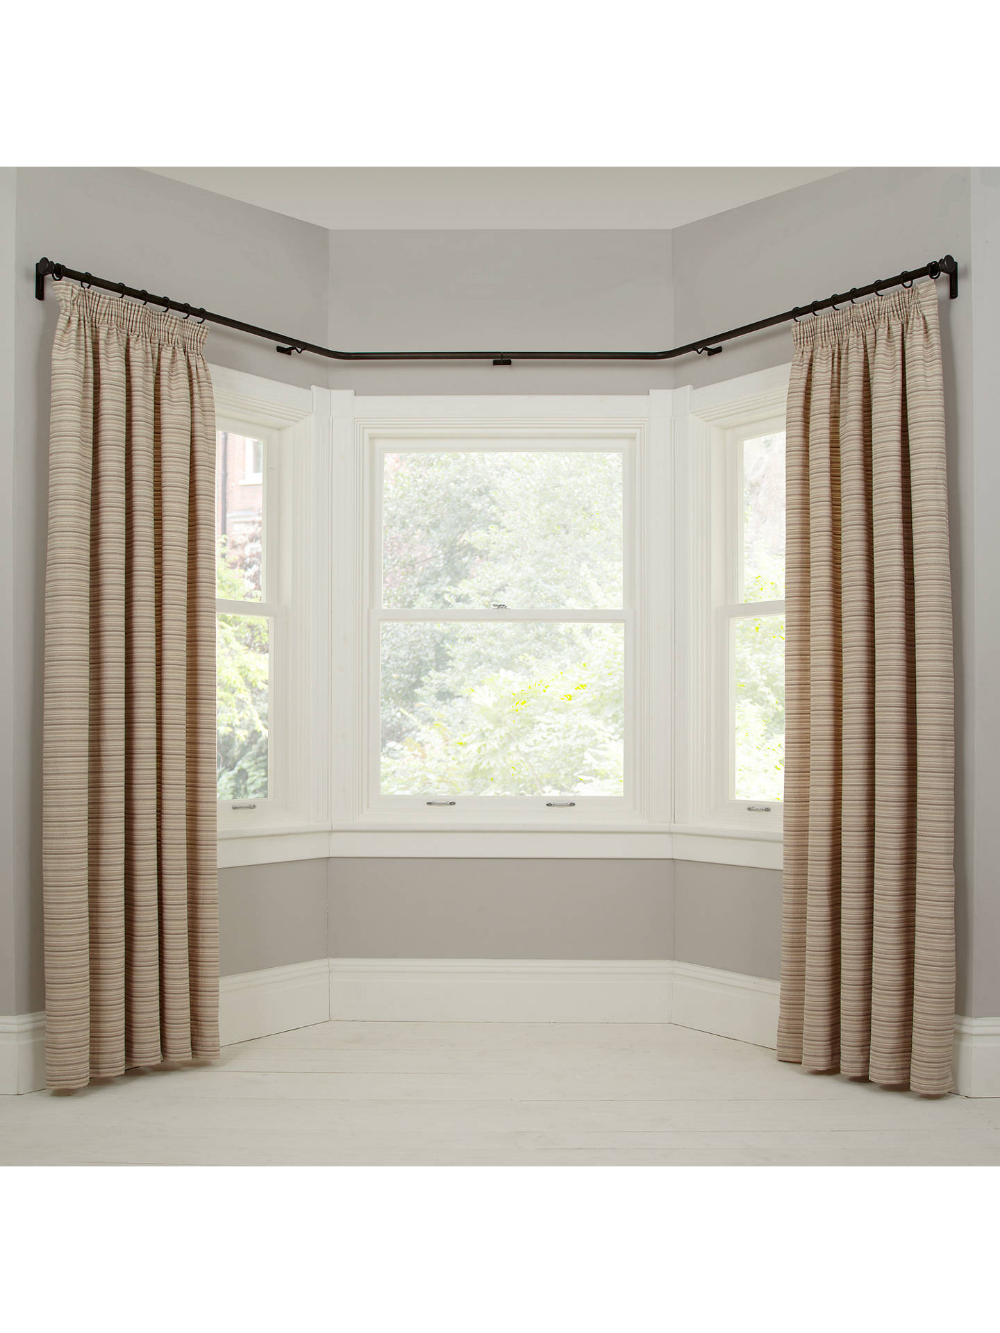 John Lewis Partners Made To Measure Classic Bay Bend Curtain Pole Disc Finial Brass Toned Steel Curtain Poles Bay Window Living Room Window Treatments Living Room